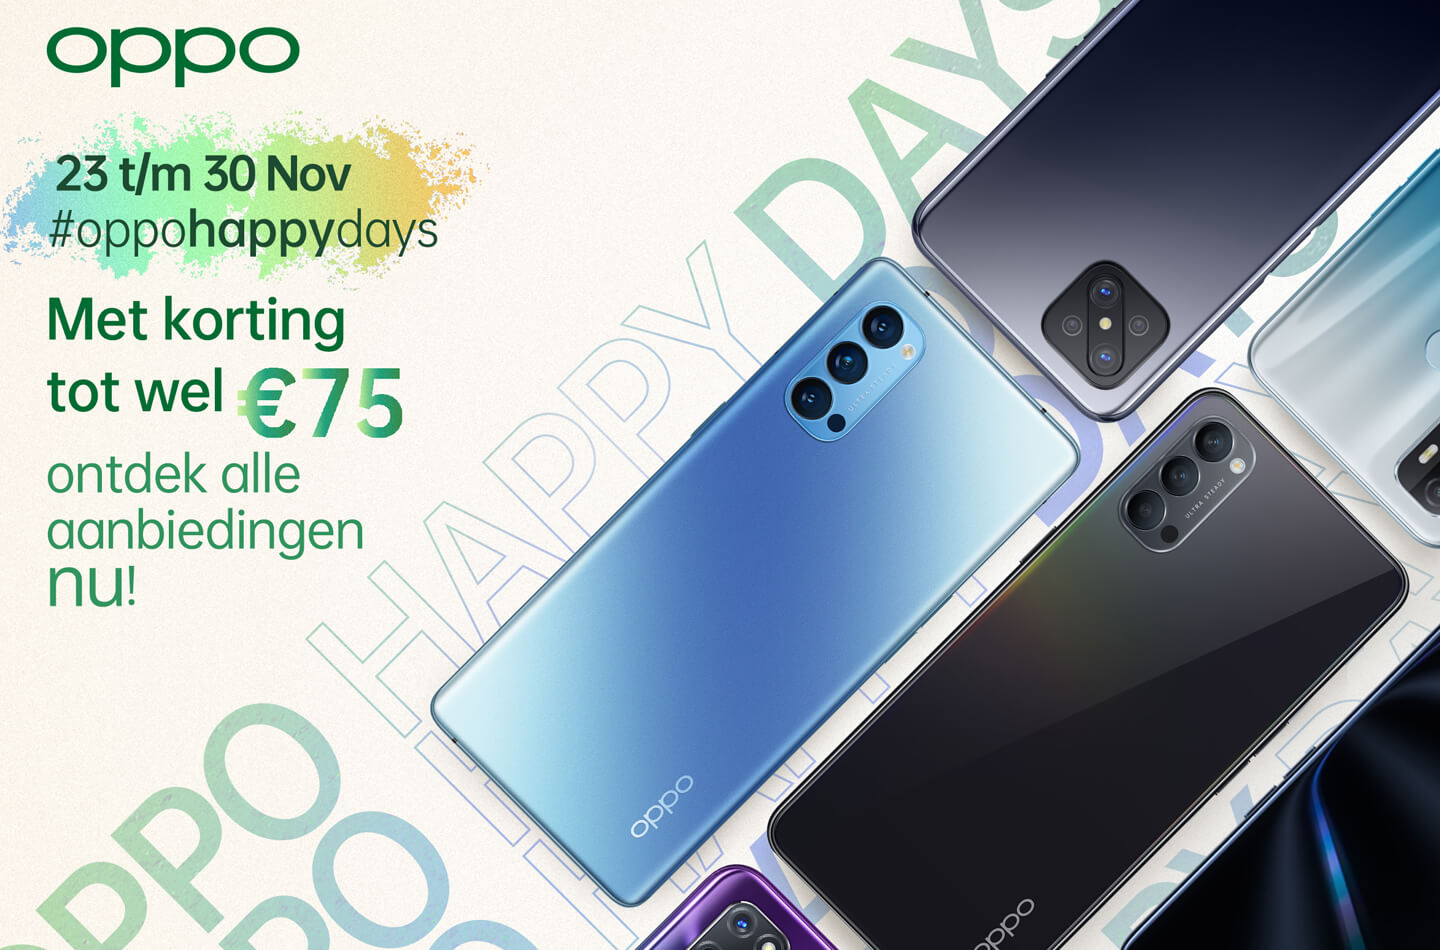 Oppo telefoon back friday